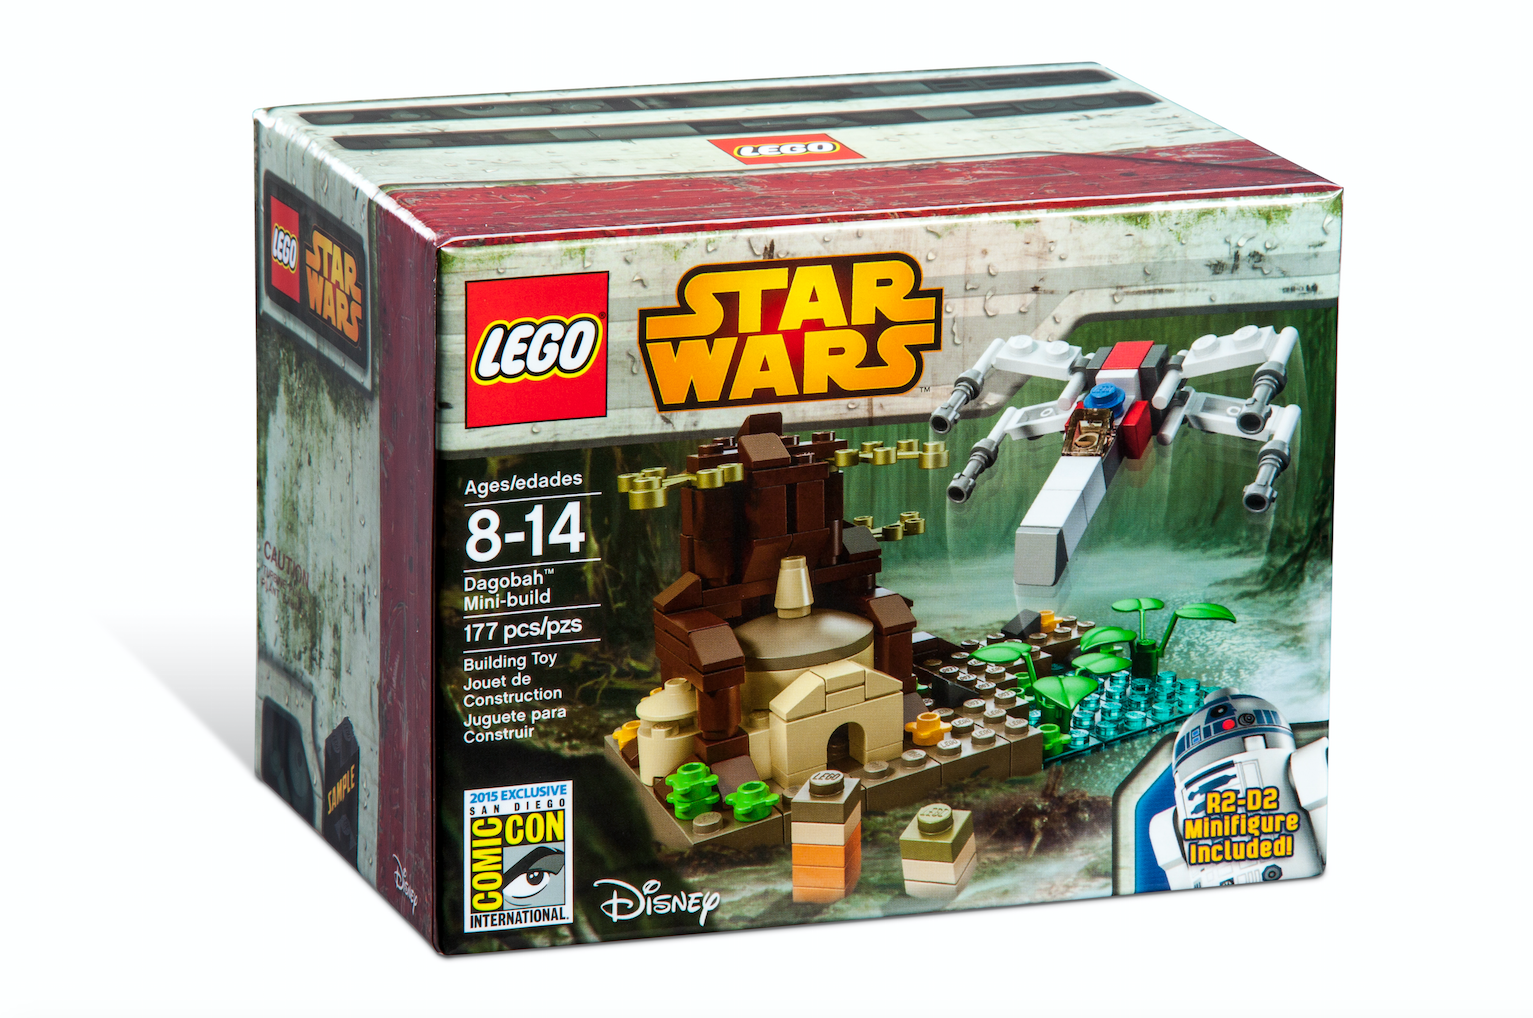 Lego Star Wars Rebels 2016 Sets